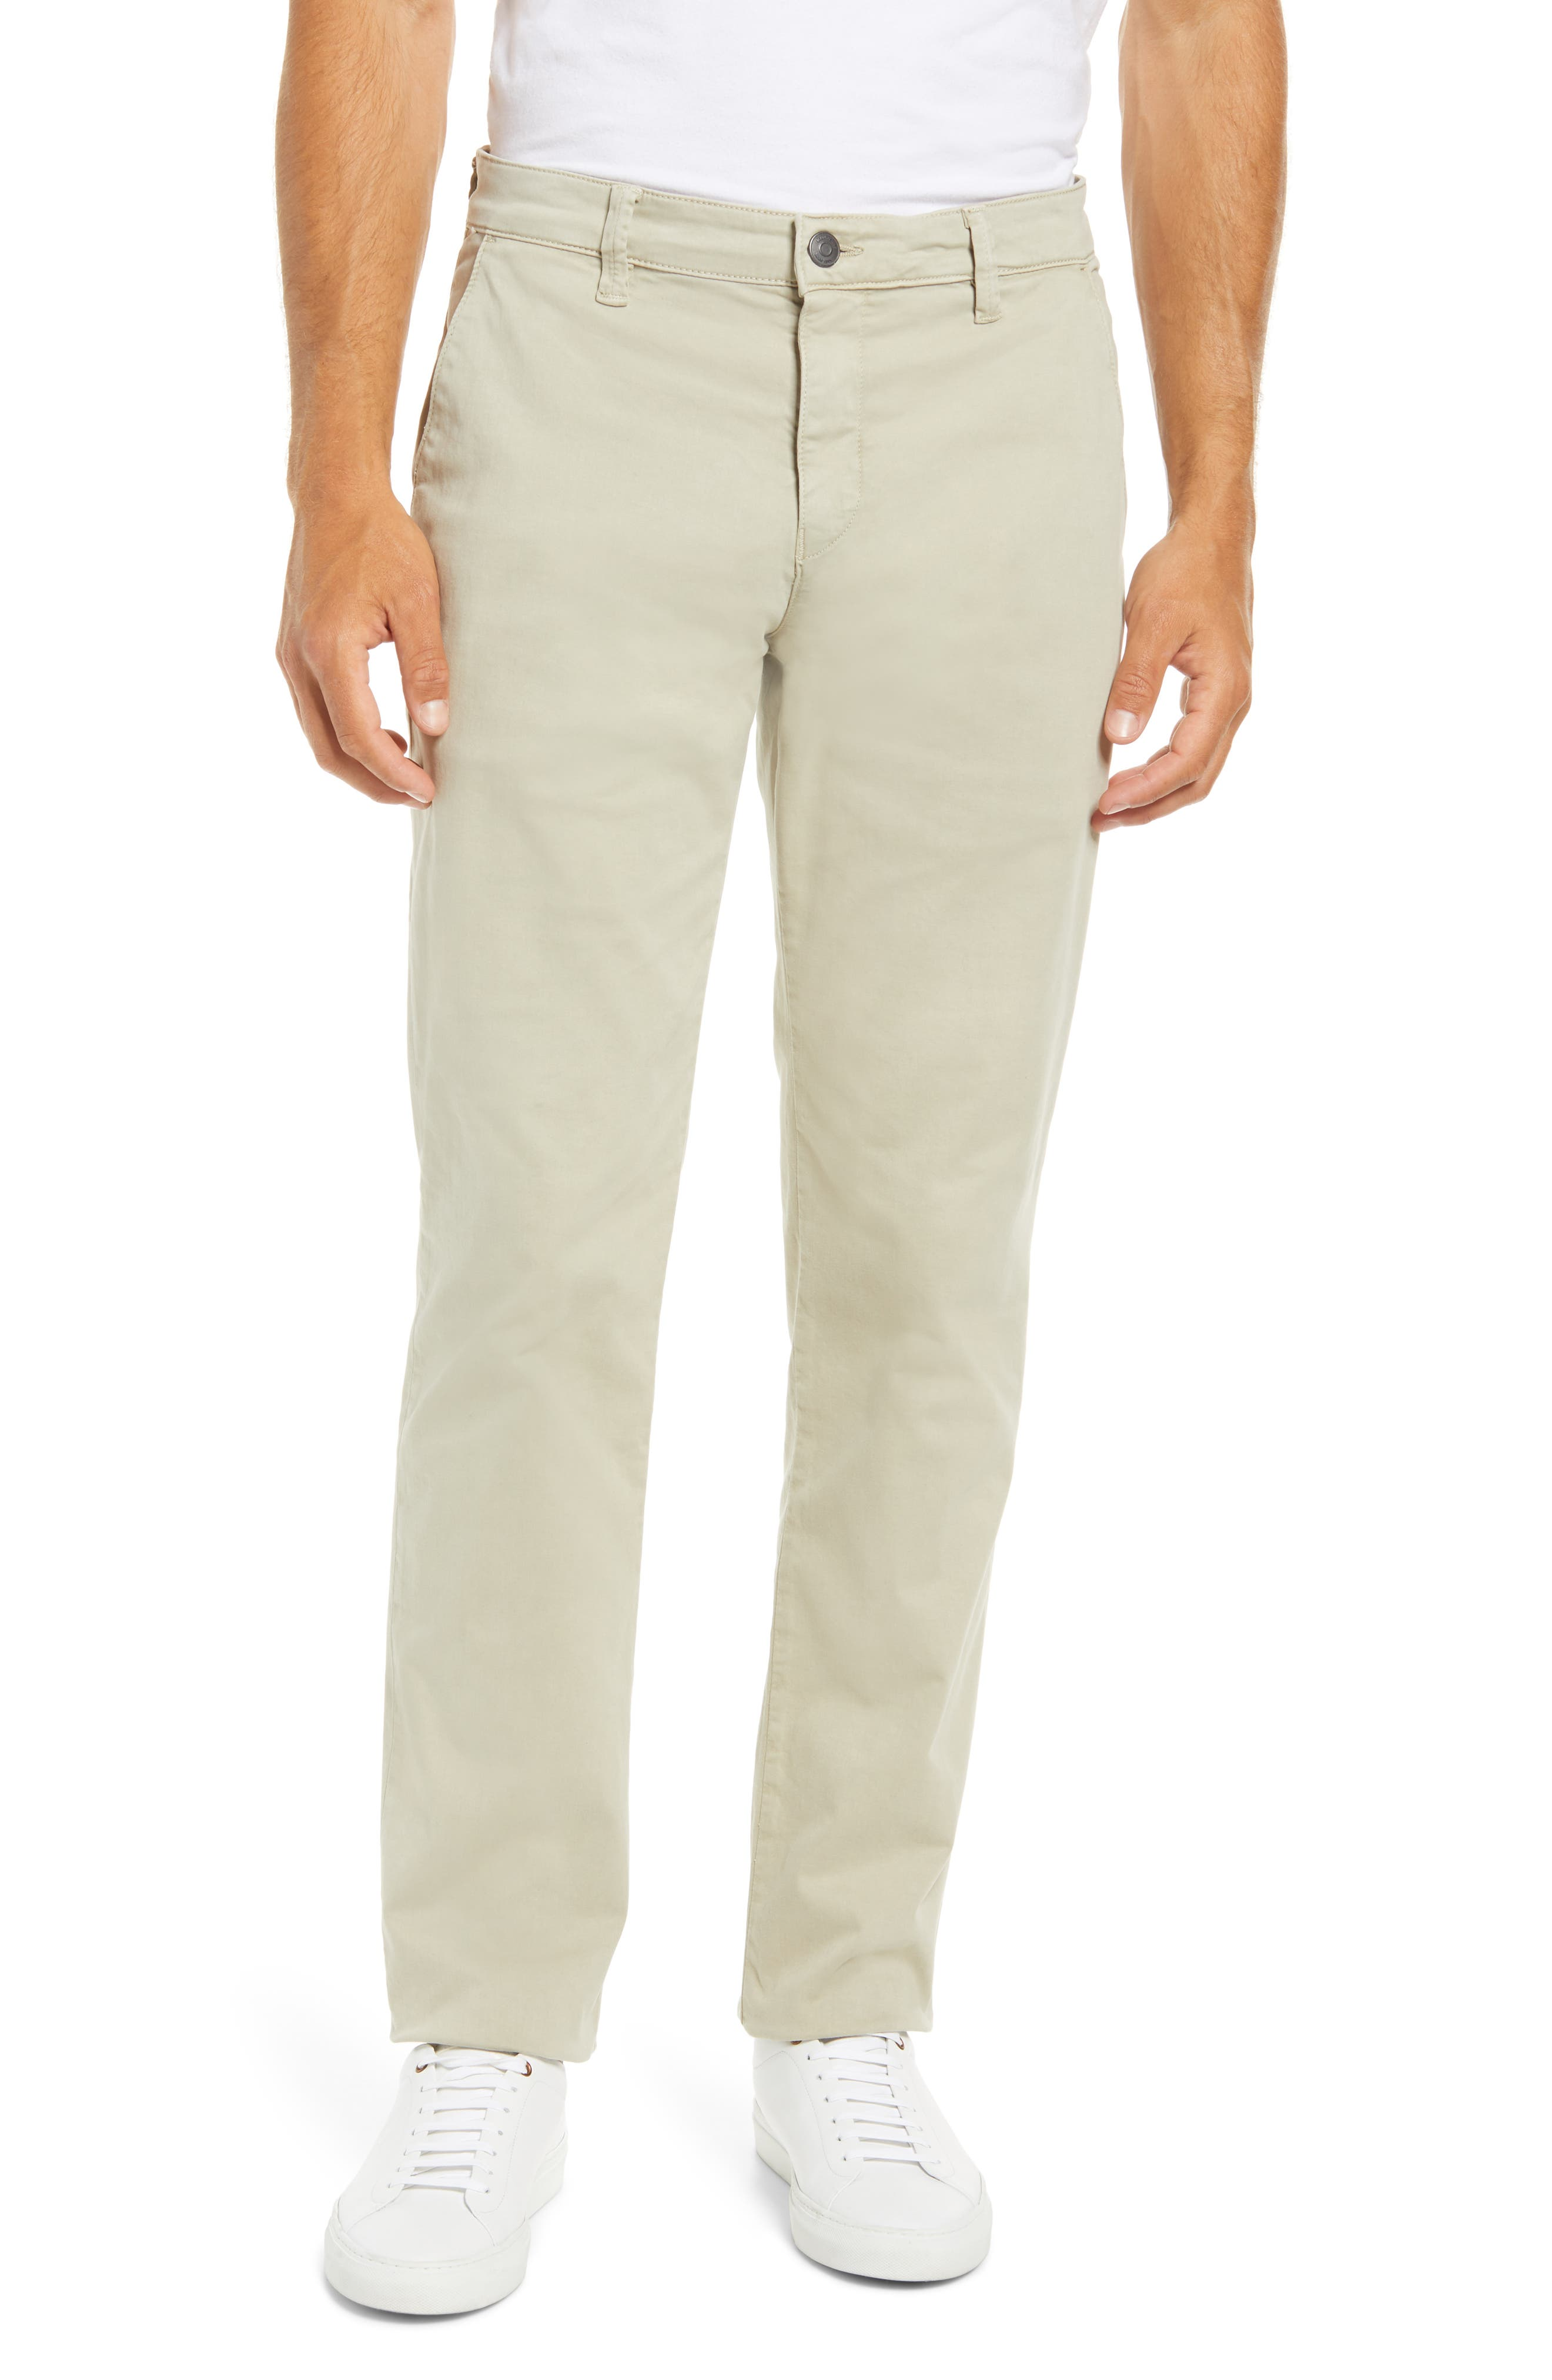 A neutral hue brings wardrobe-spanning versatility to slim-fitting chinos cut from stretch cotton twill that\\\'s been brushed for a soft, broken-in feel. Style Name: Mavi Jeans Edward Slim Straight Leg Chinos. Style Number: 6109170. Available in stores.